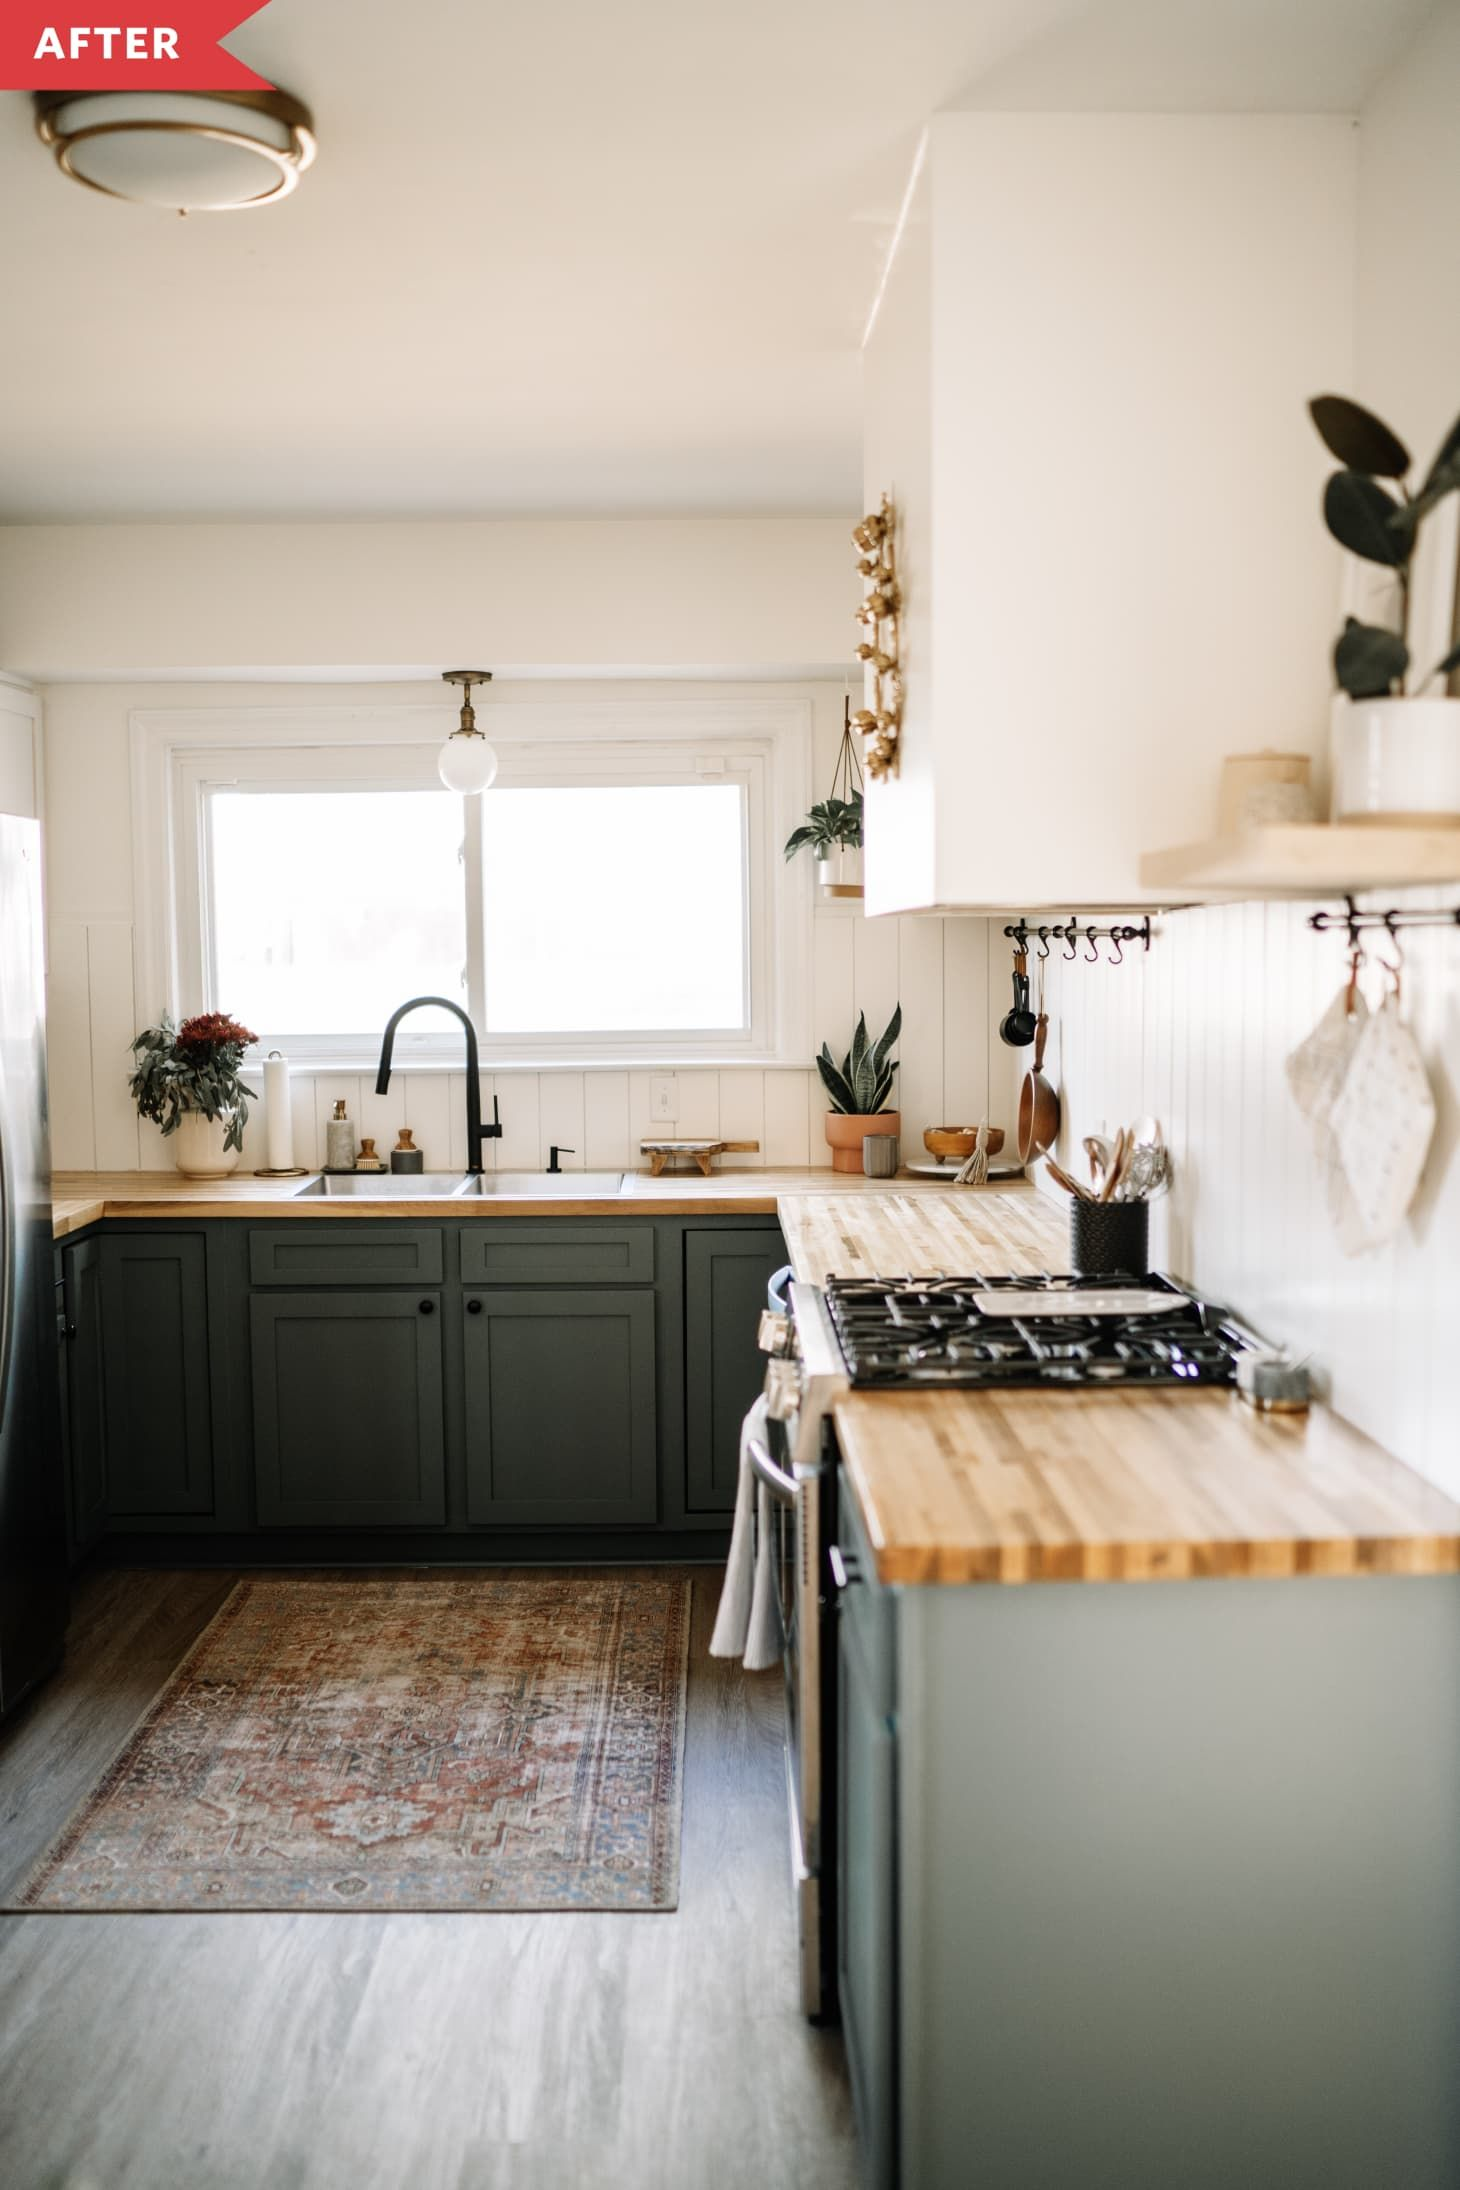 Before & After: This DIY Kitchen Redo Would Make Chip and Joanna Proud